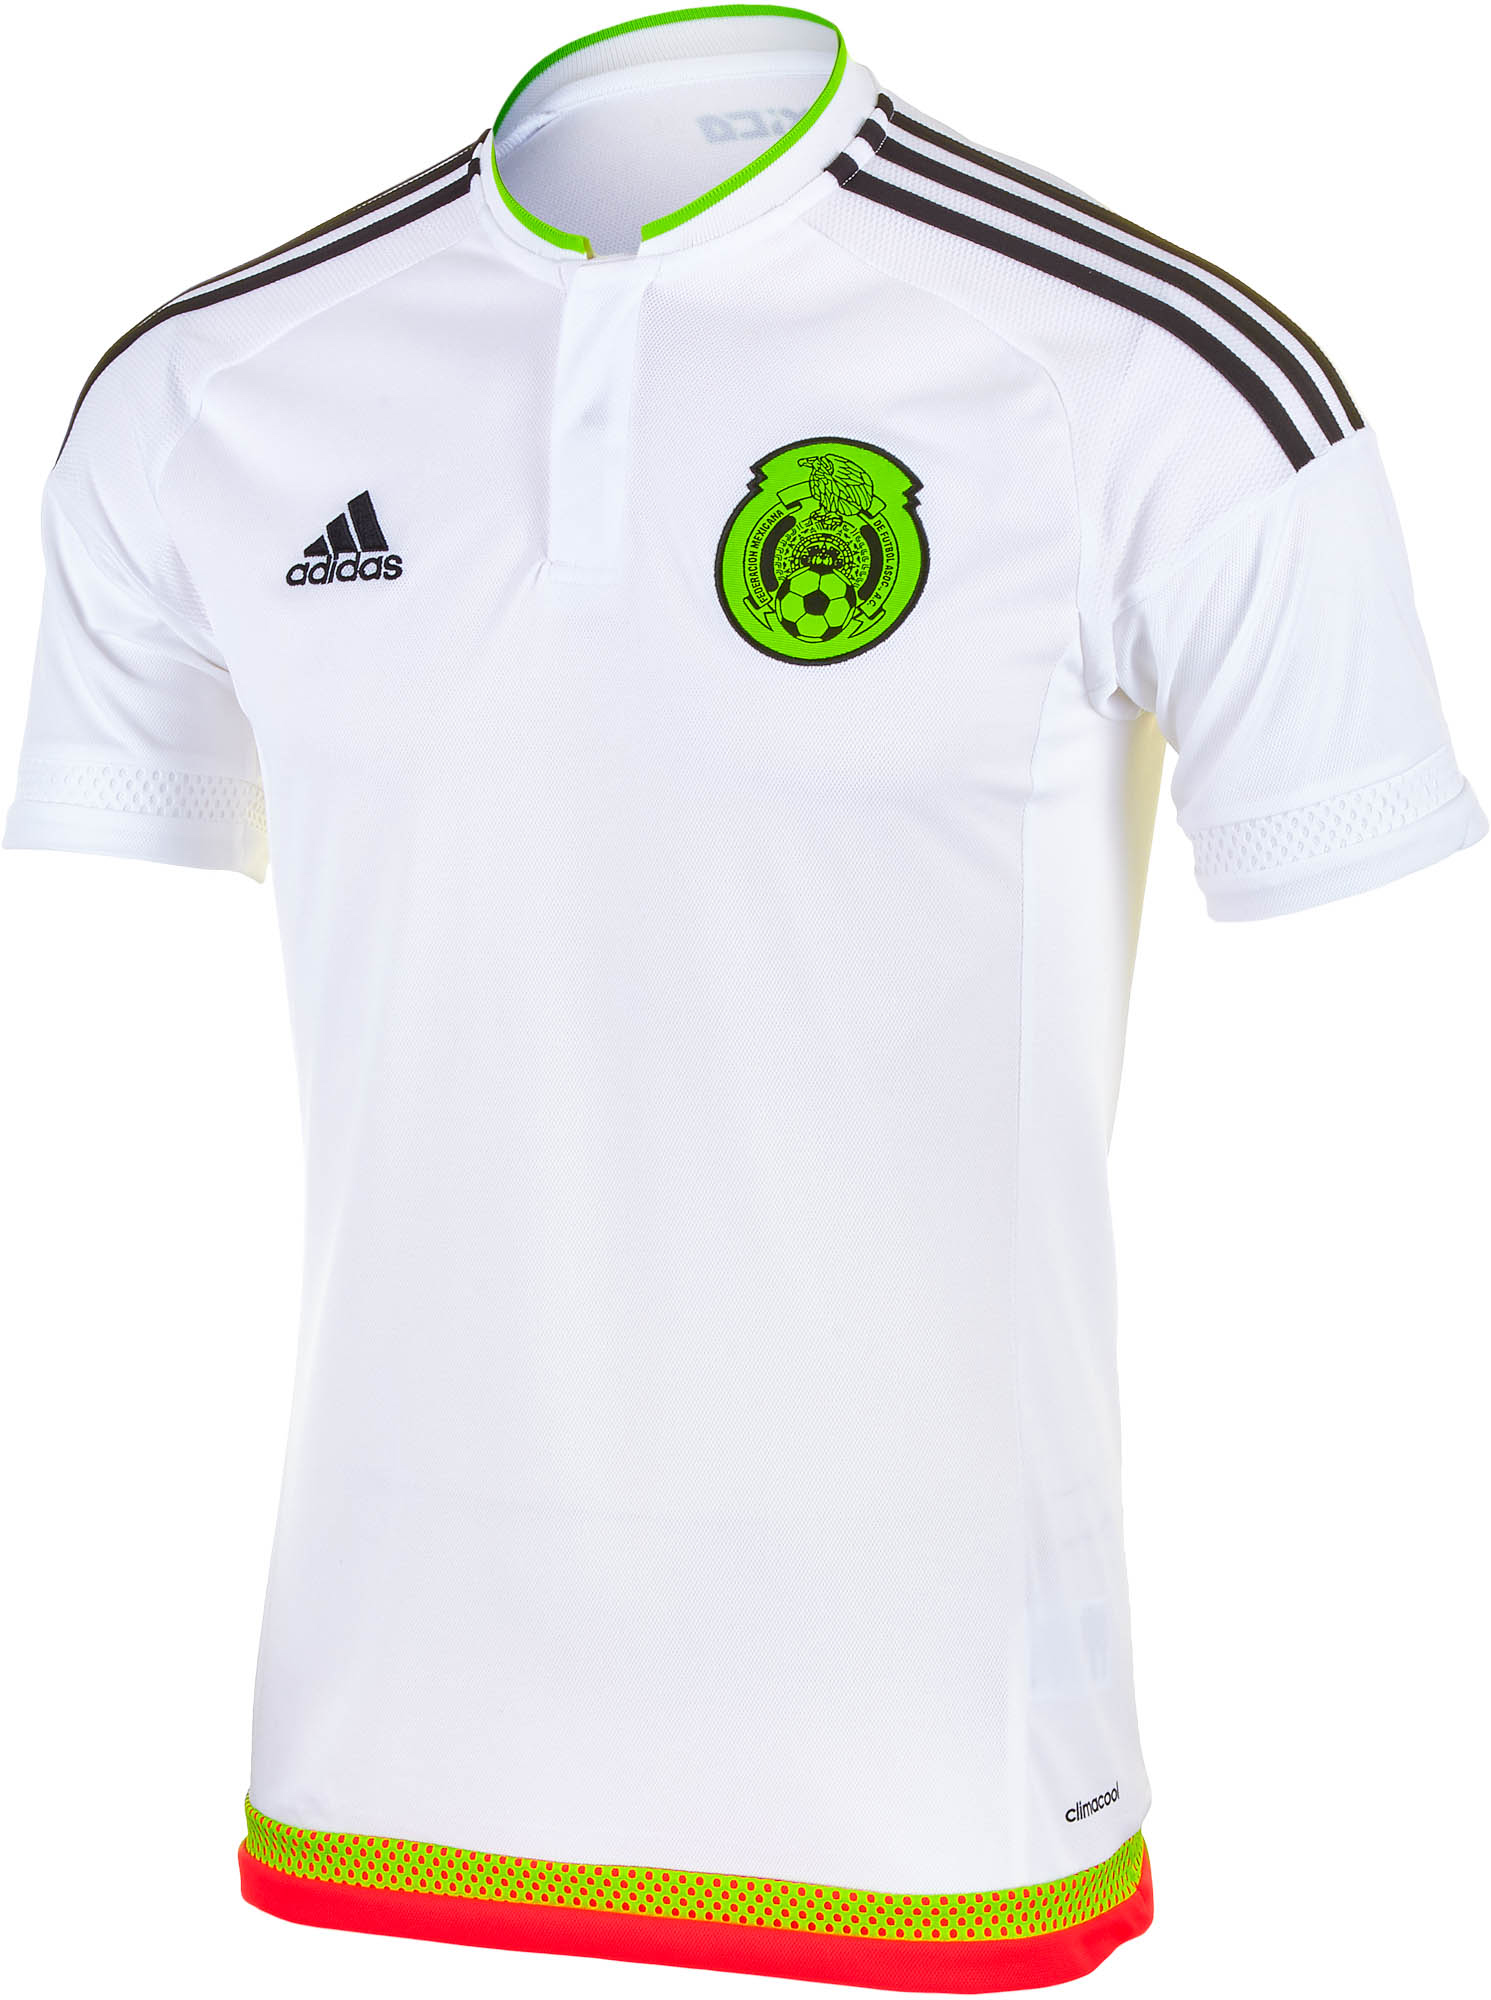 90bec3d86 adidas Mexico Jersey - White 2015 Kids Mexico Away Jerseys